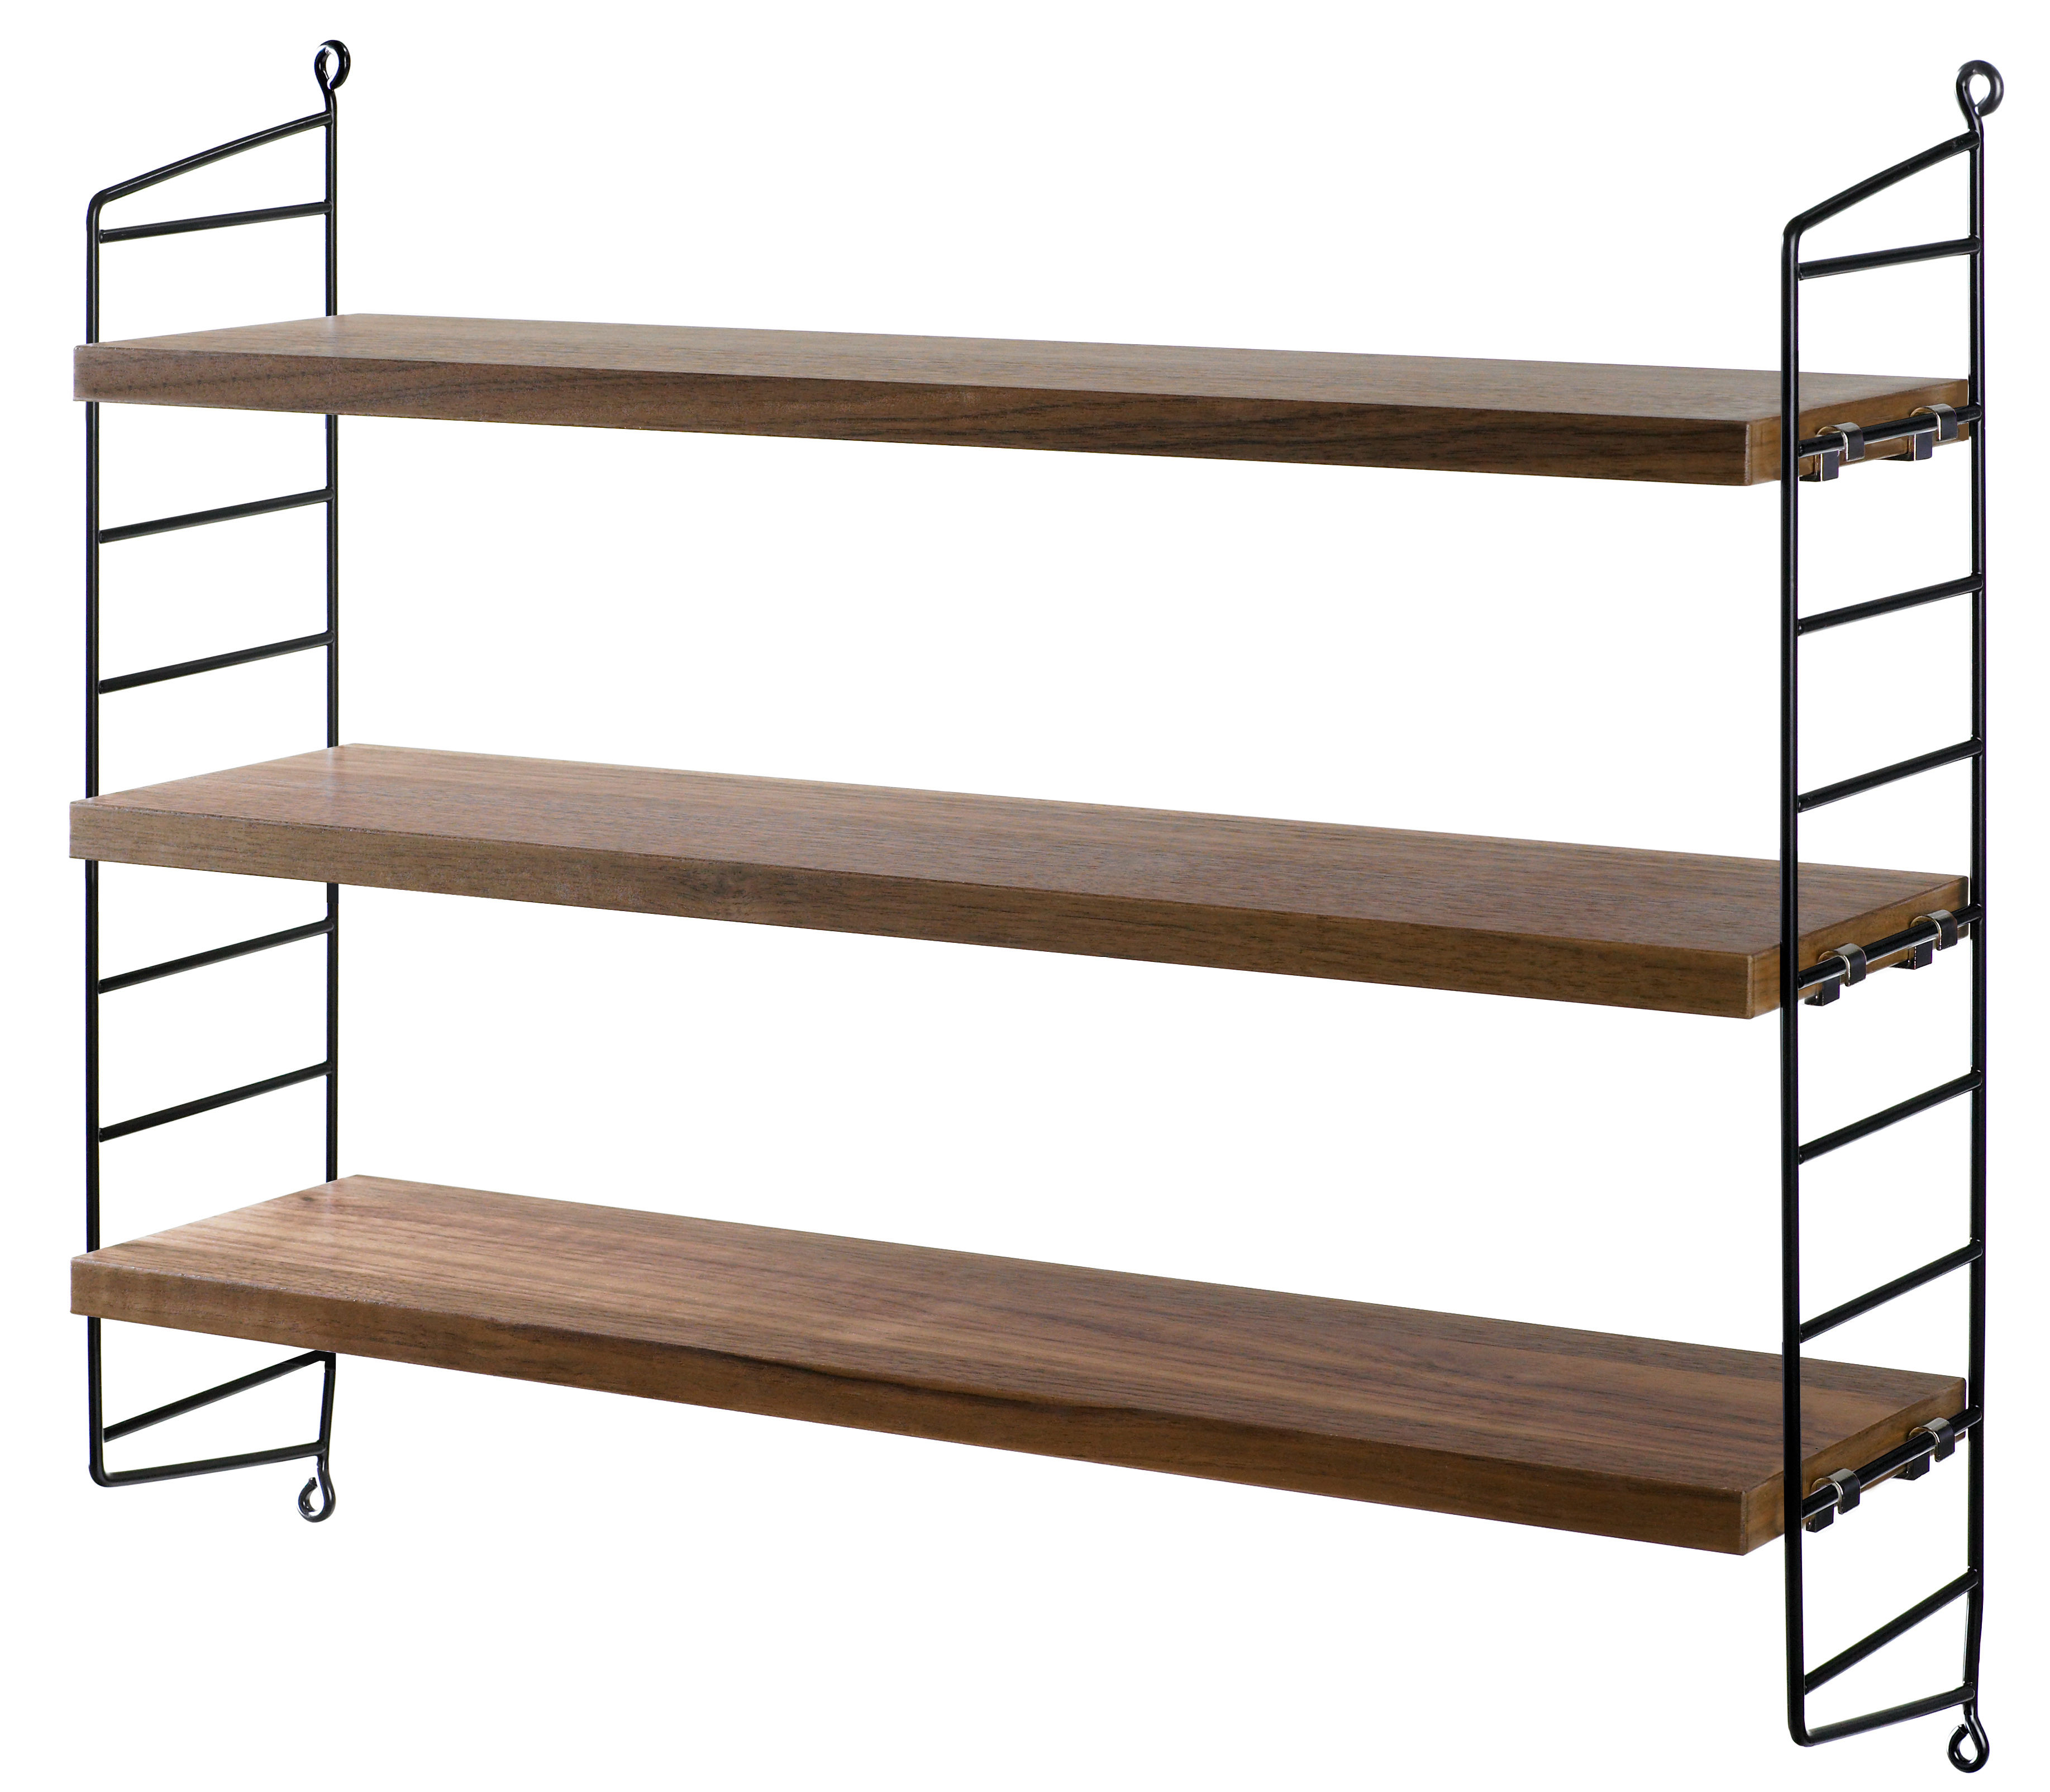 string pocket shelf wooden version l 60 x h 50 cm. Black Bedroom Furniture Sets. Home Design Ideas